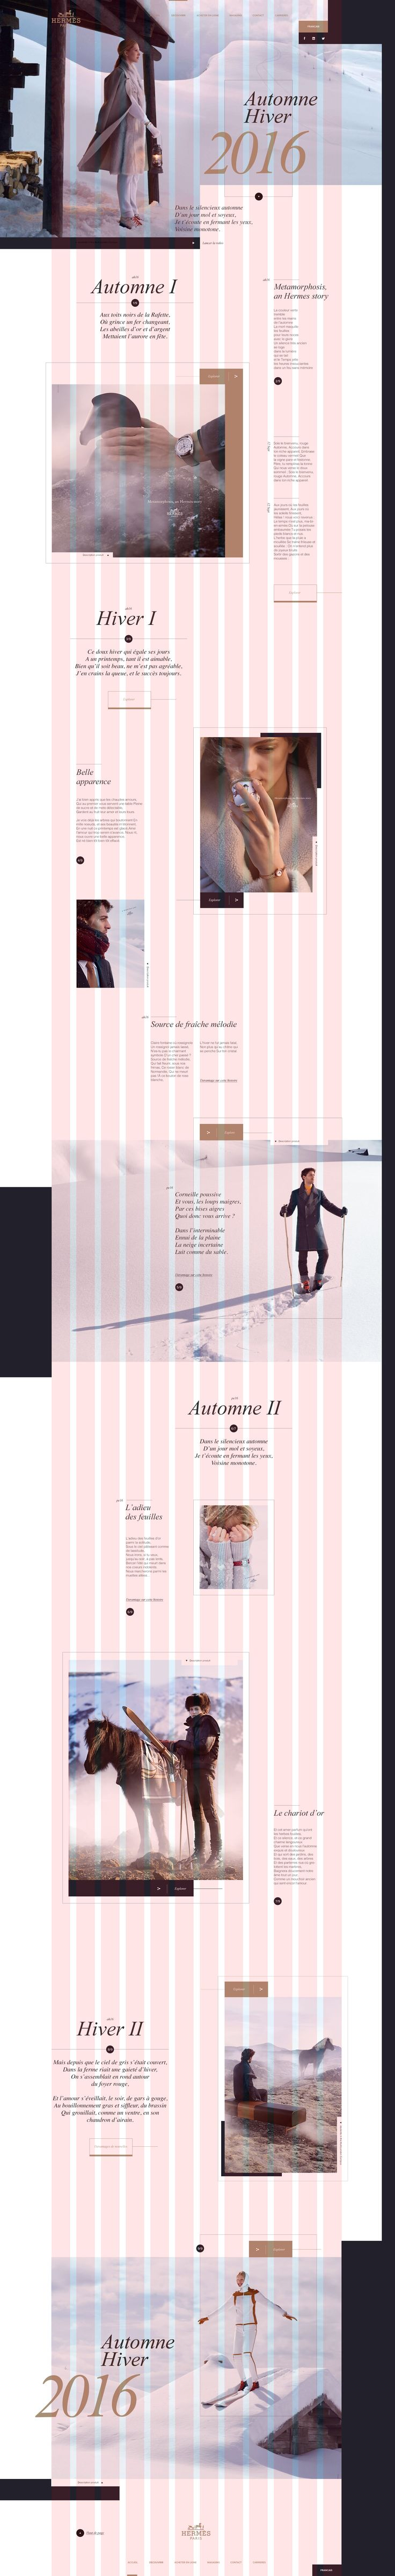 Hermes online redesign concept by Thomas Le Corre #design #grid